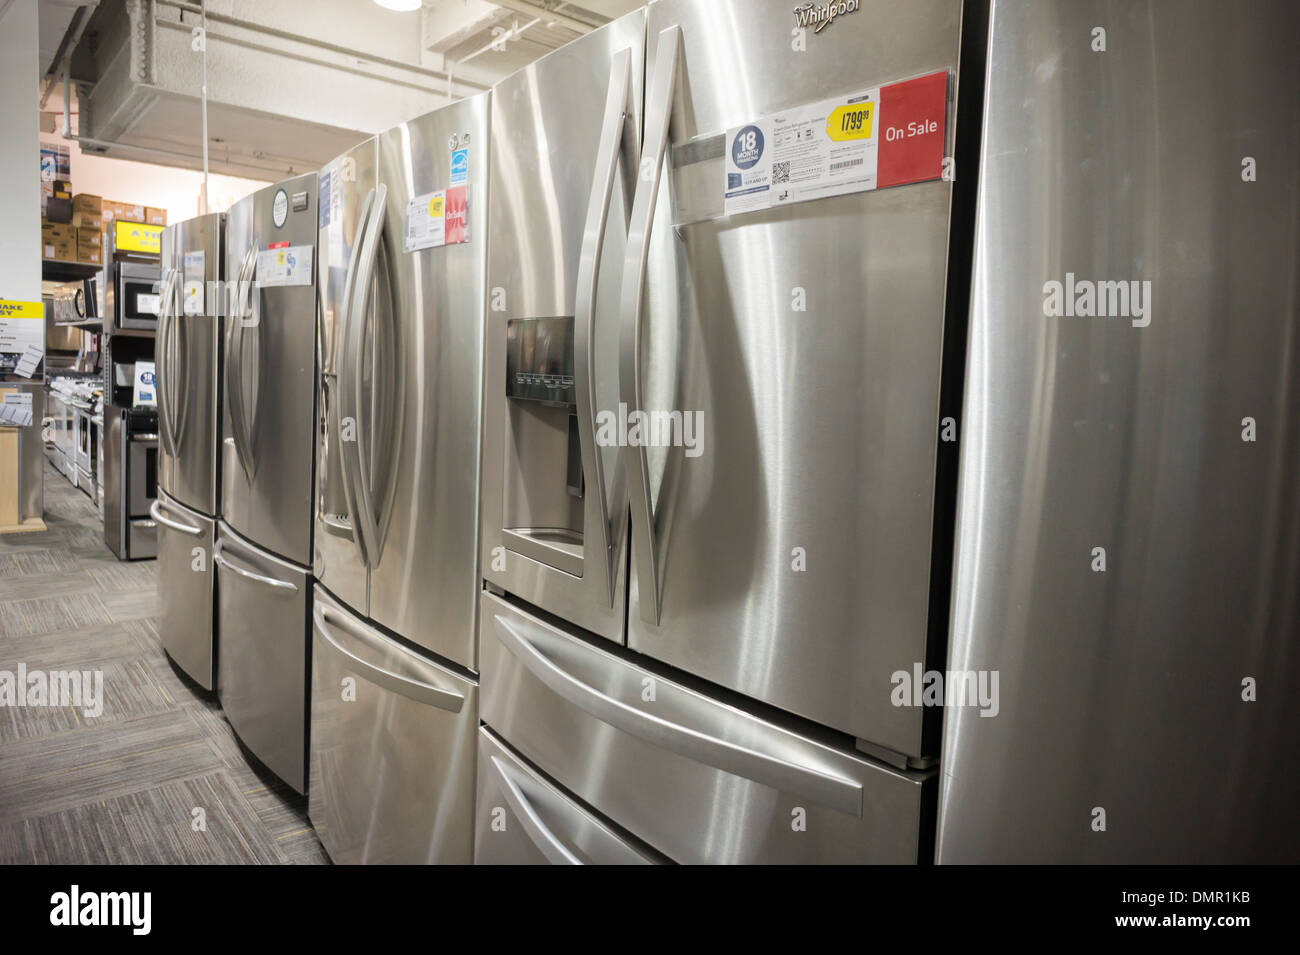 Steel Refrigerators Stockfotos & Steel Refrigerators Bilder - Alamy